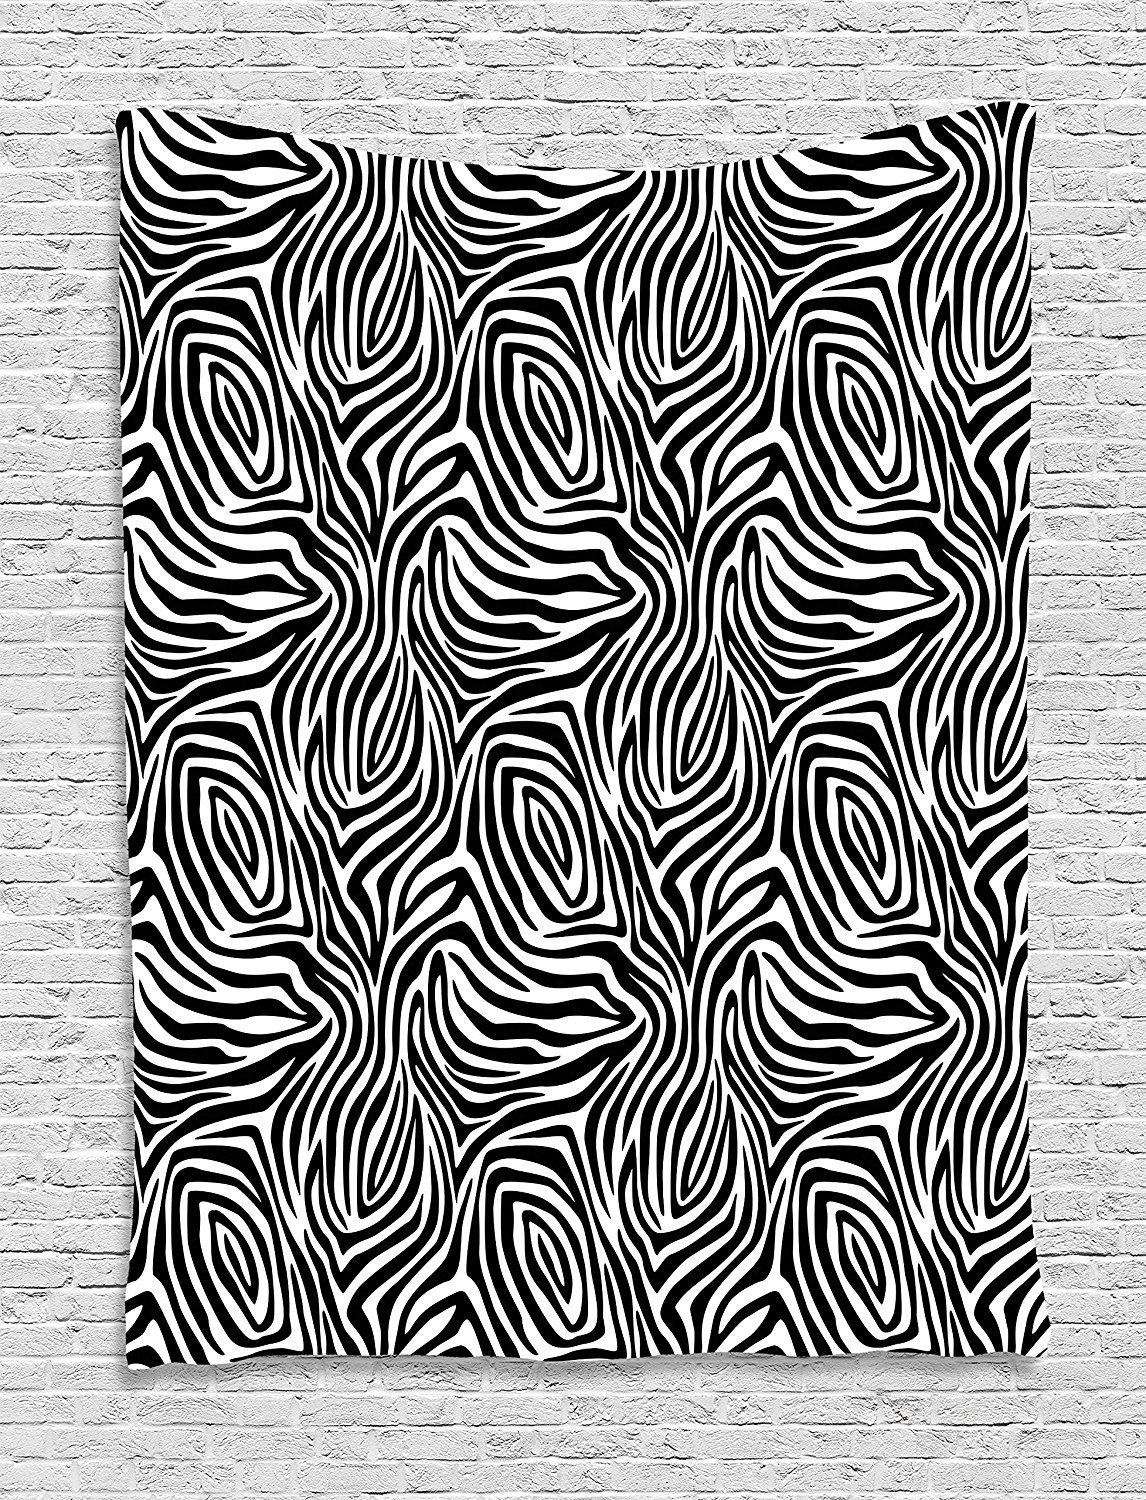 Stripes Tapestry, African Zebra Skin Pattern with Abstract Lines Monochrome Wild Animal Hide Design, Wall Hanging for Bedroom Living Room Dorm, 60 W X 80 L Inches, Black White